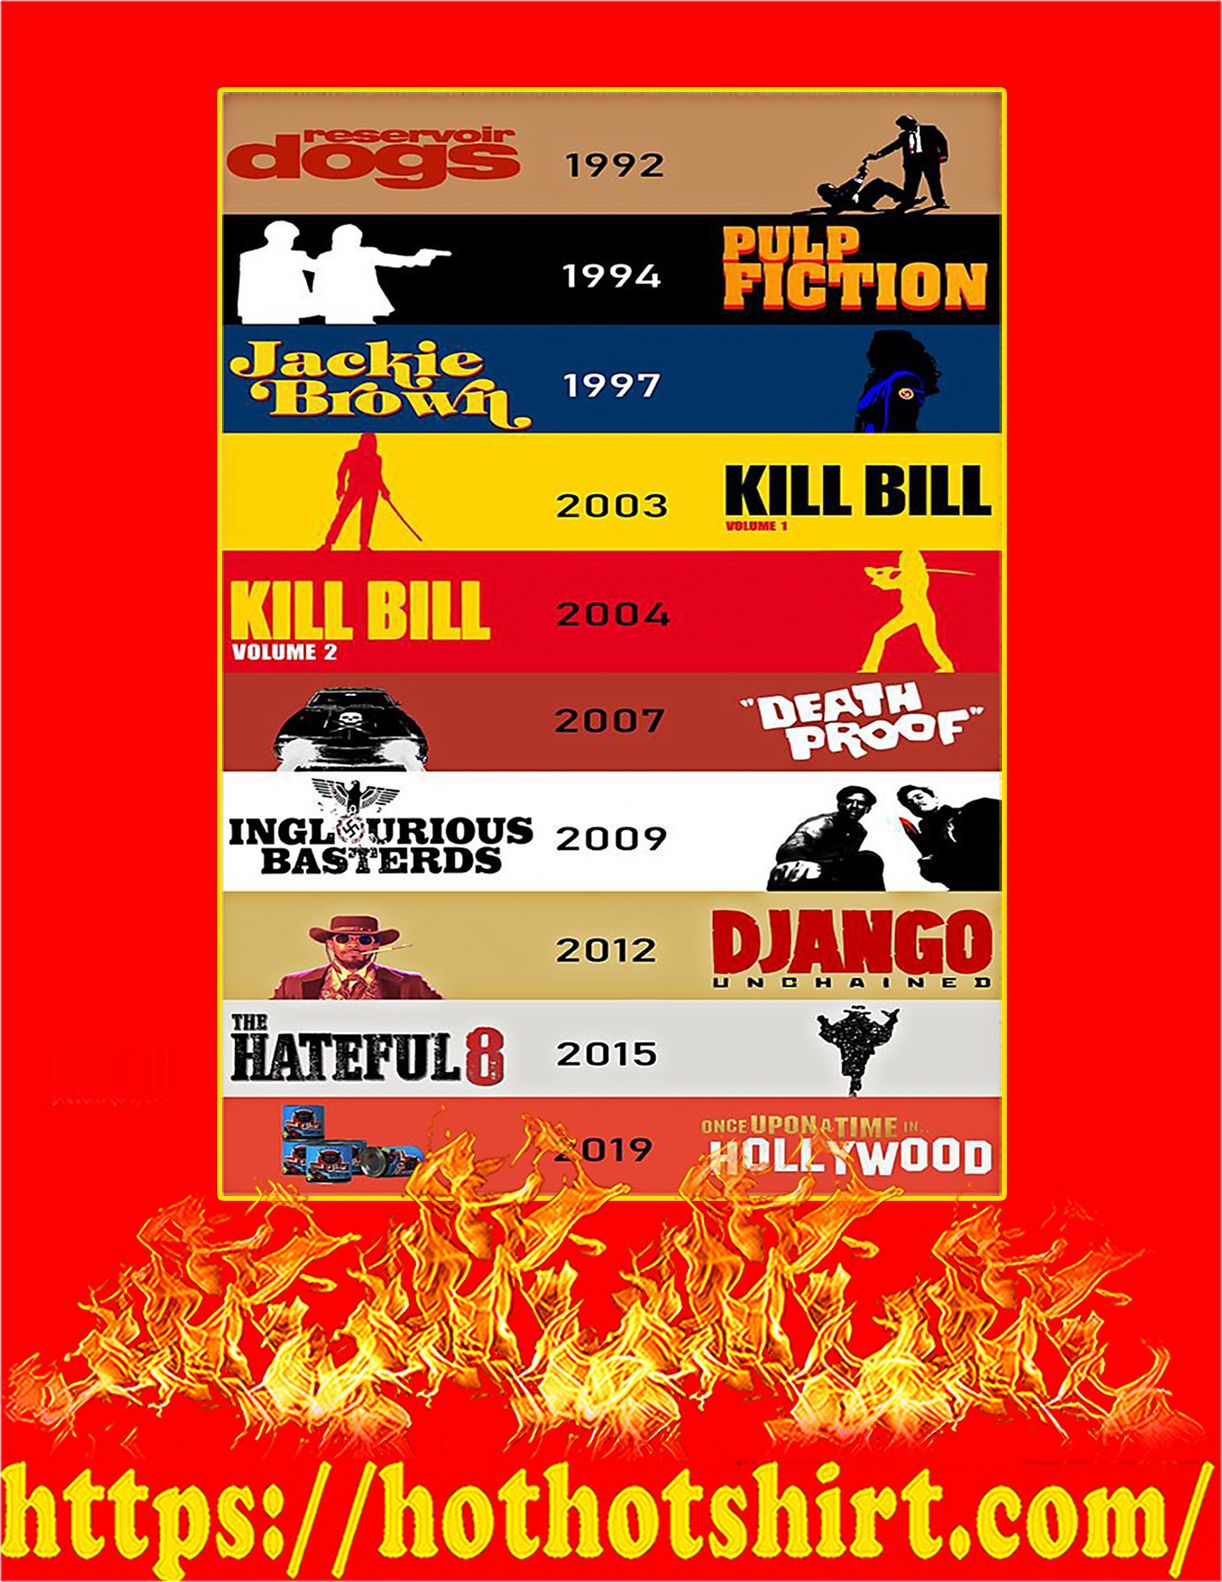 Quentin Tarantino movies reservoir dogs 1992 poster - A3